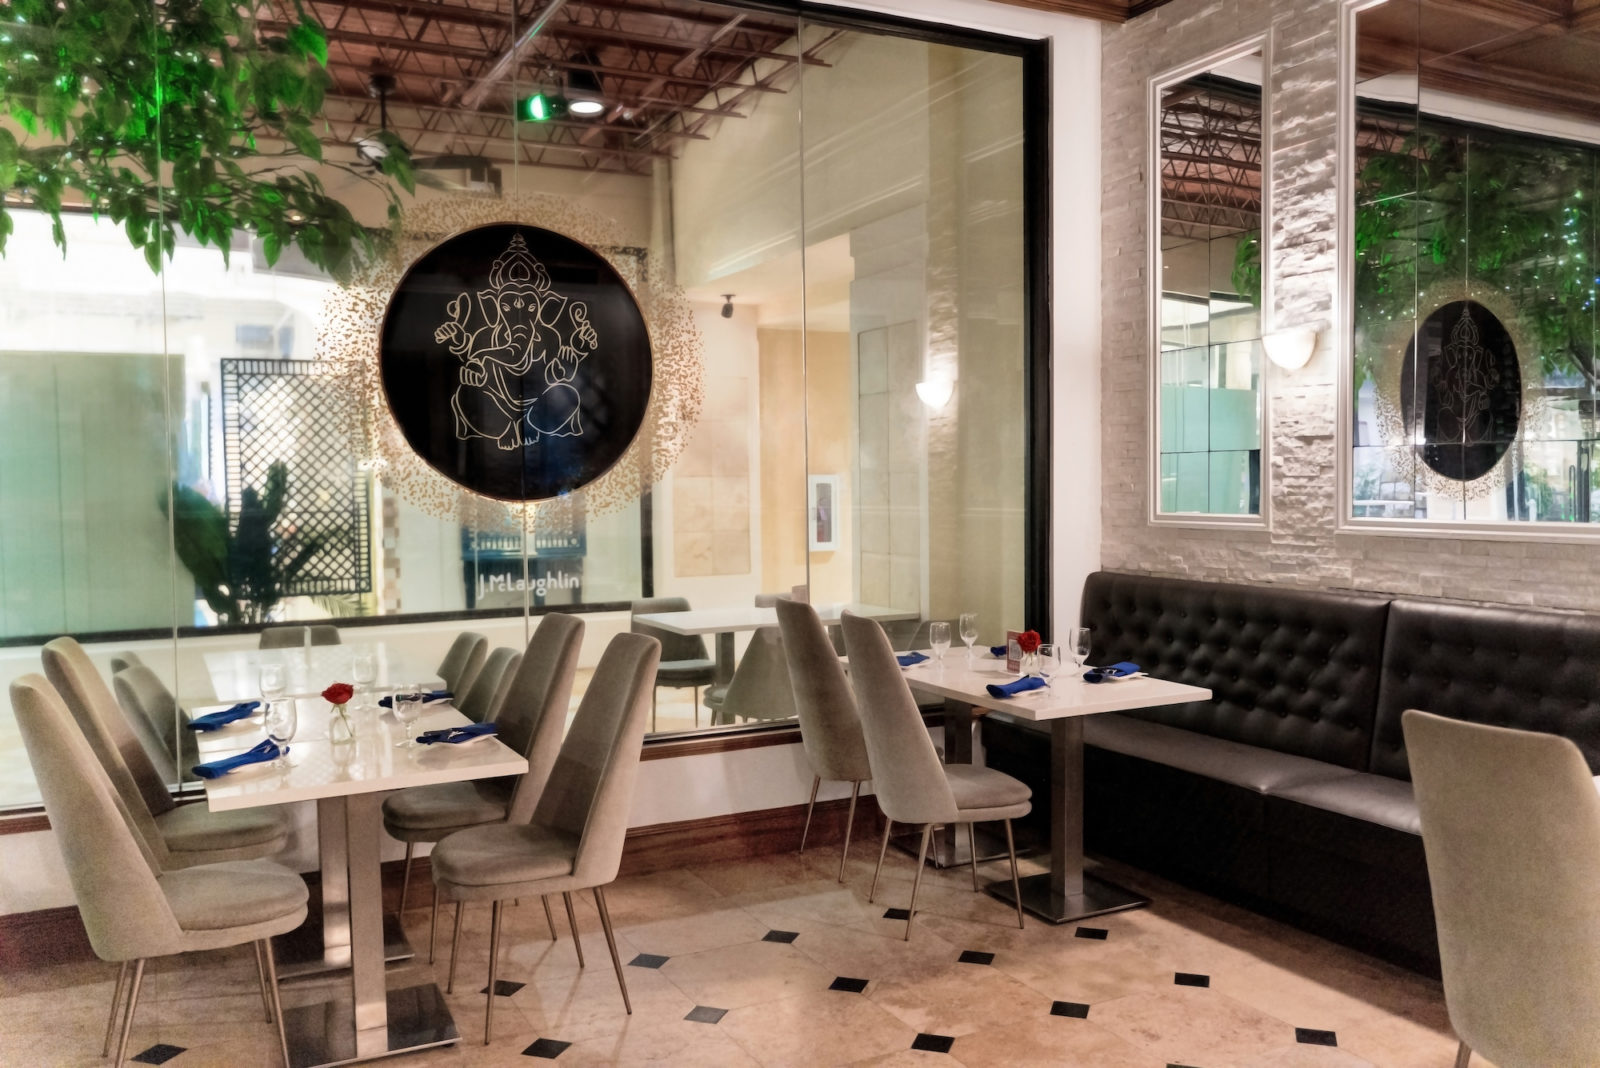 Inside dining area at Table with neutral chairs, white tables, tiled floors, and a leather booth against the wall.